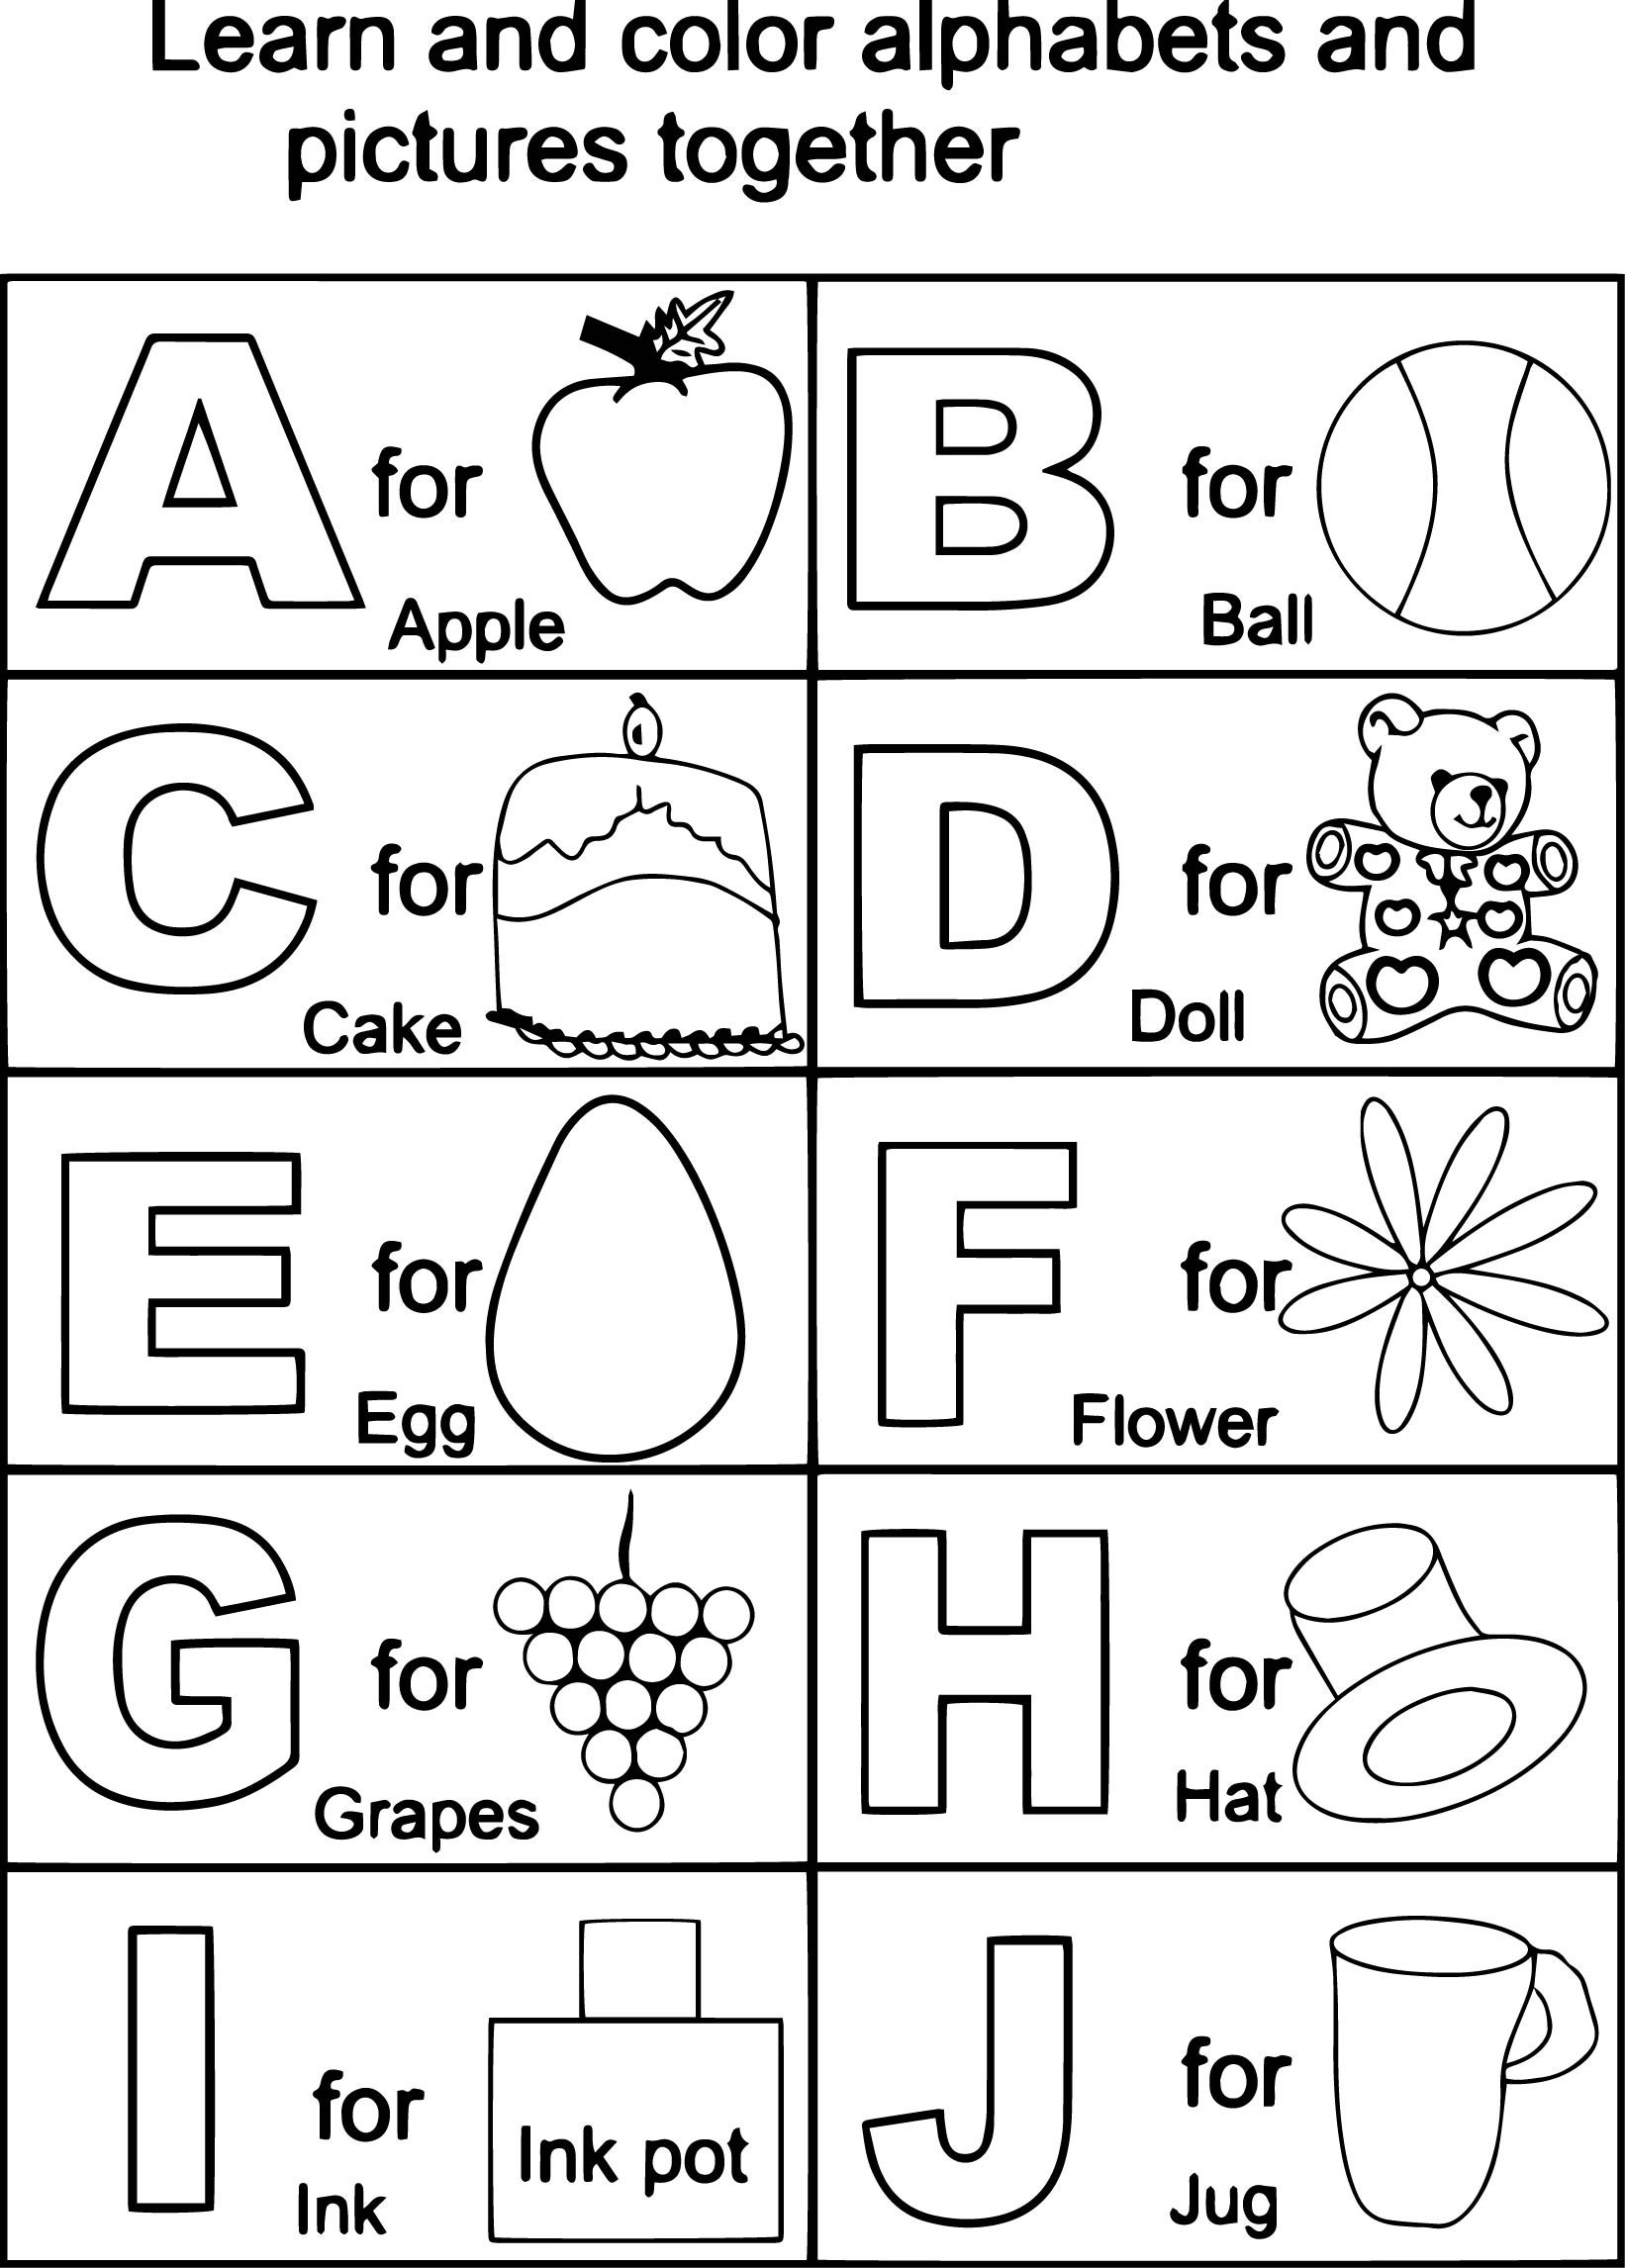 Coloring ~ Alphabetloring Book Printable Pdf Toddler Free inside Alphabet Coloring Worksheets Pdf